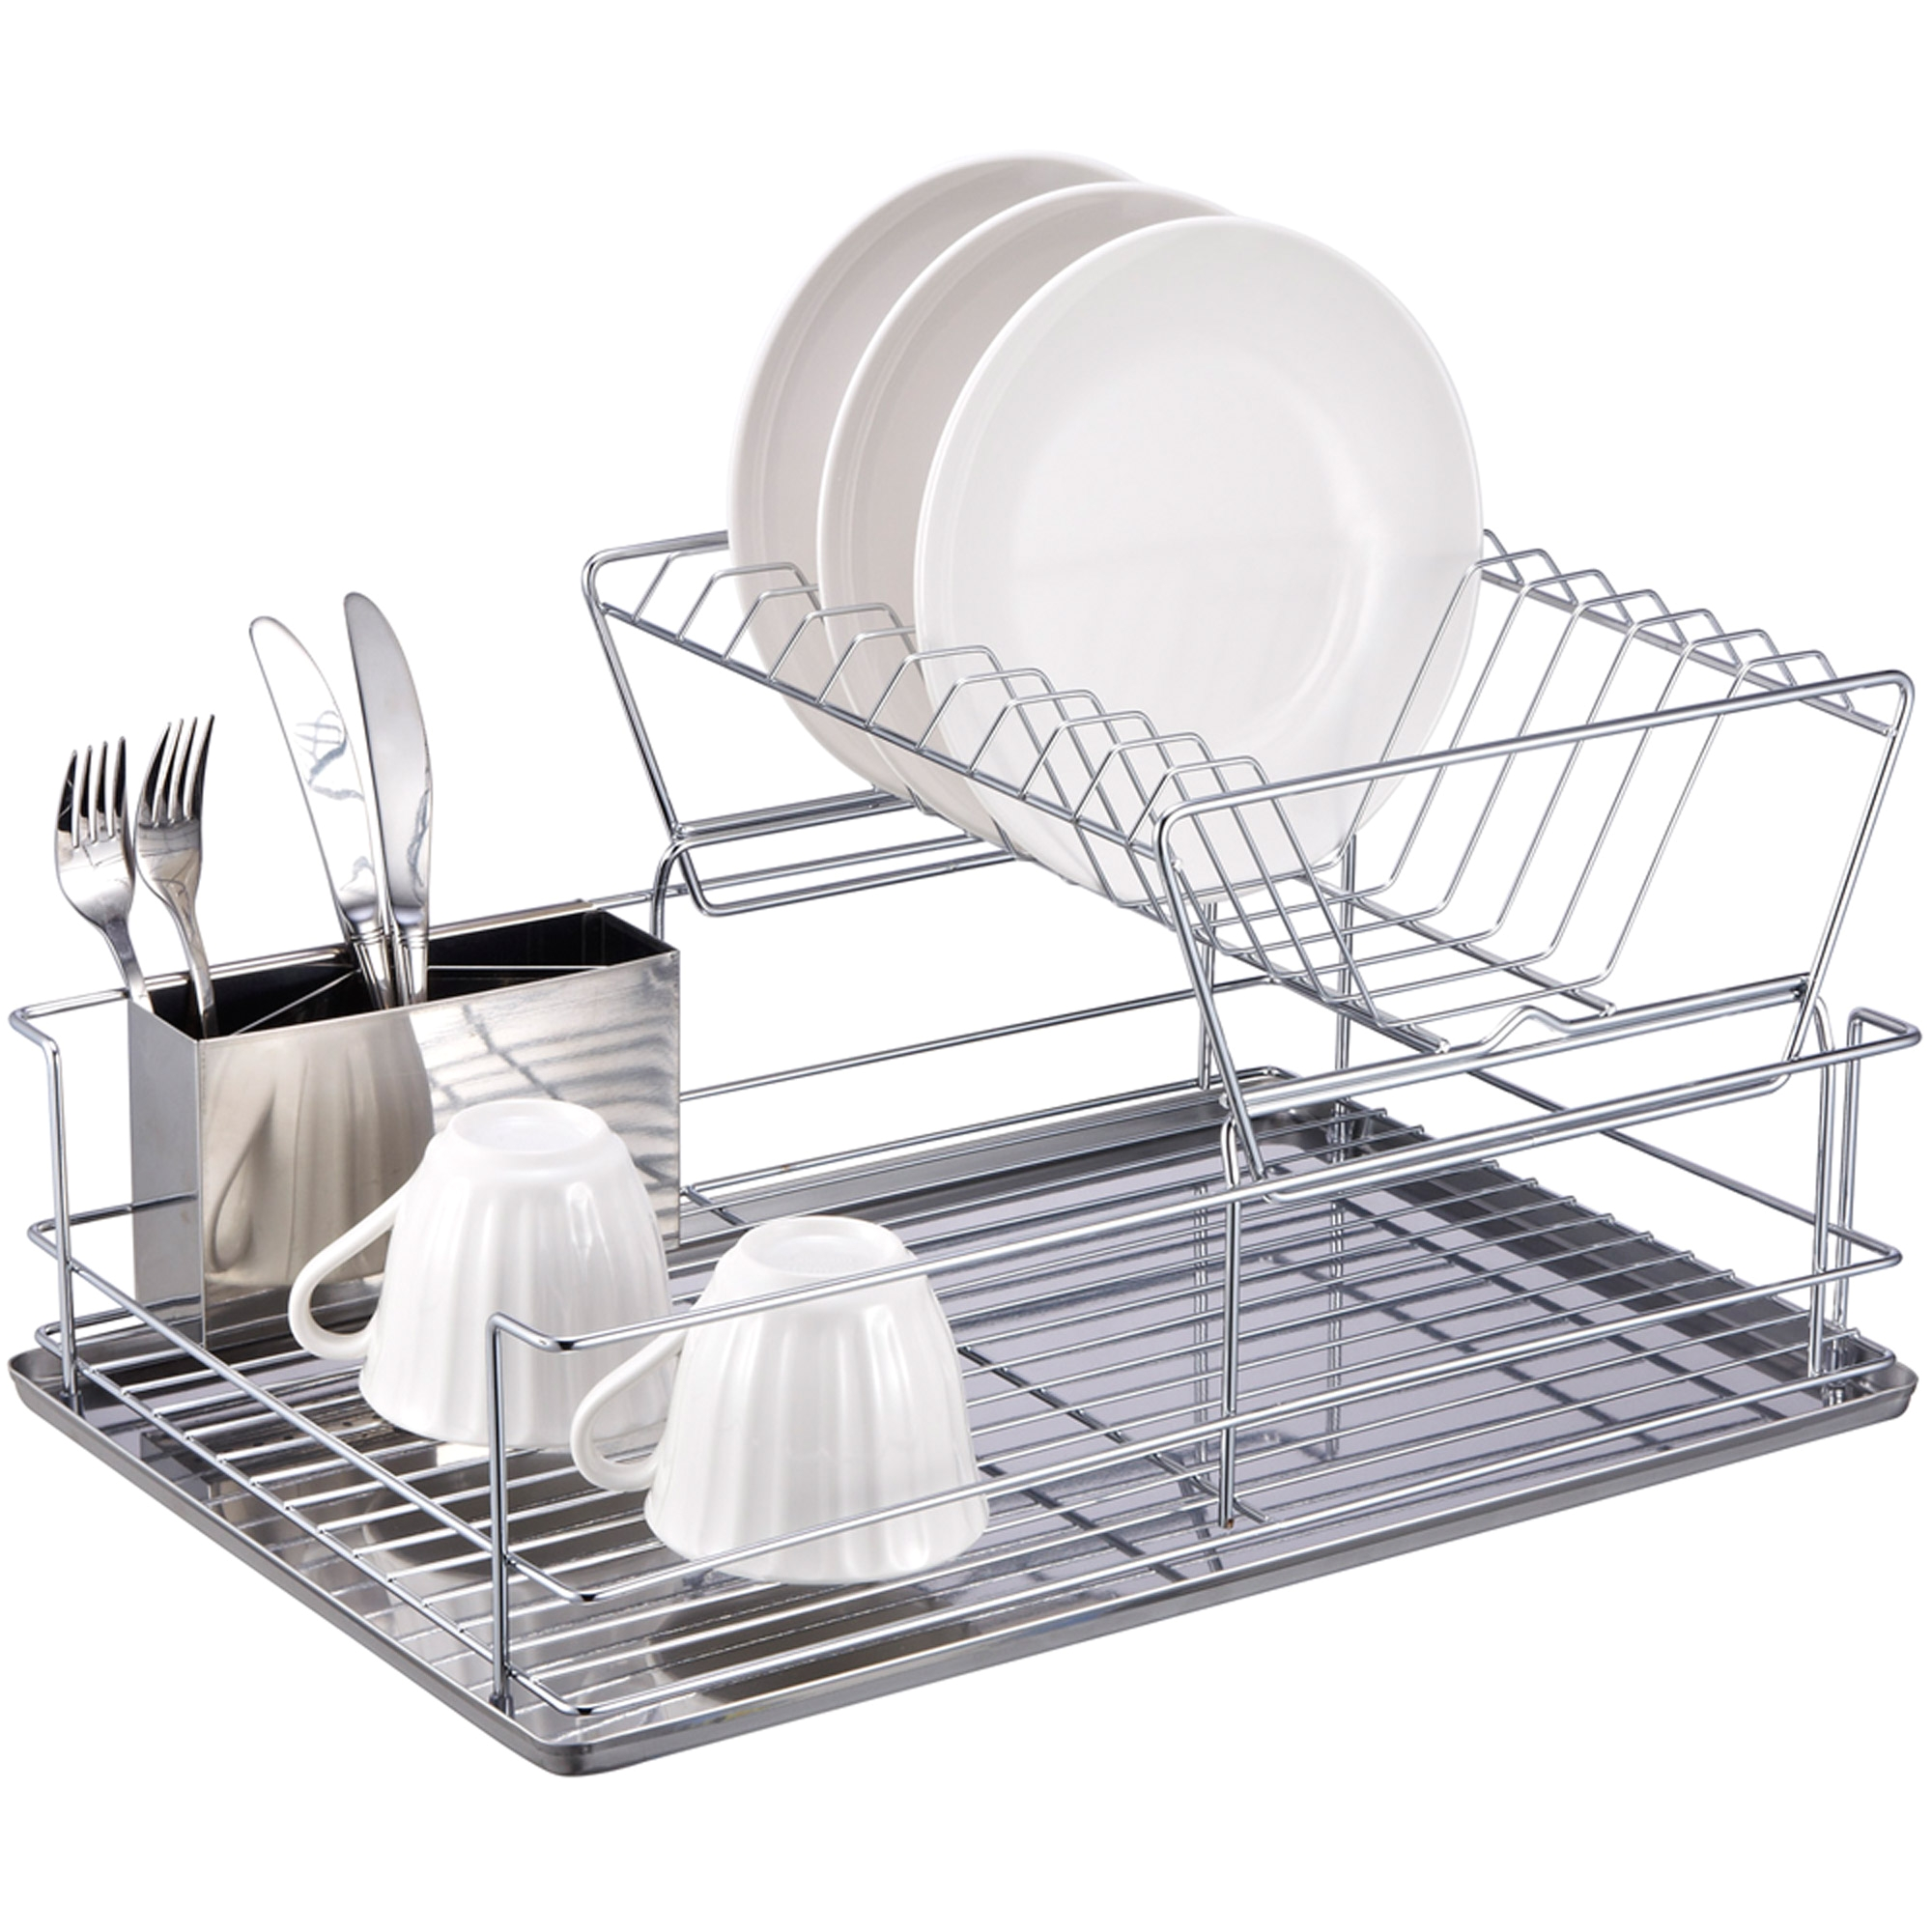 drainer chrome draining plate rack plate view larger